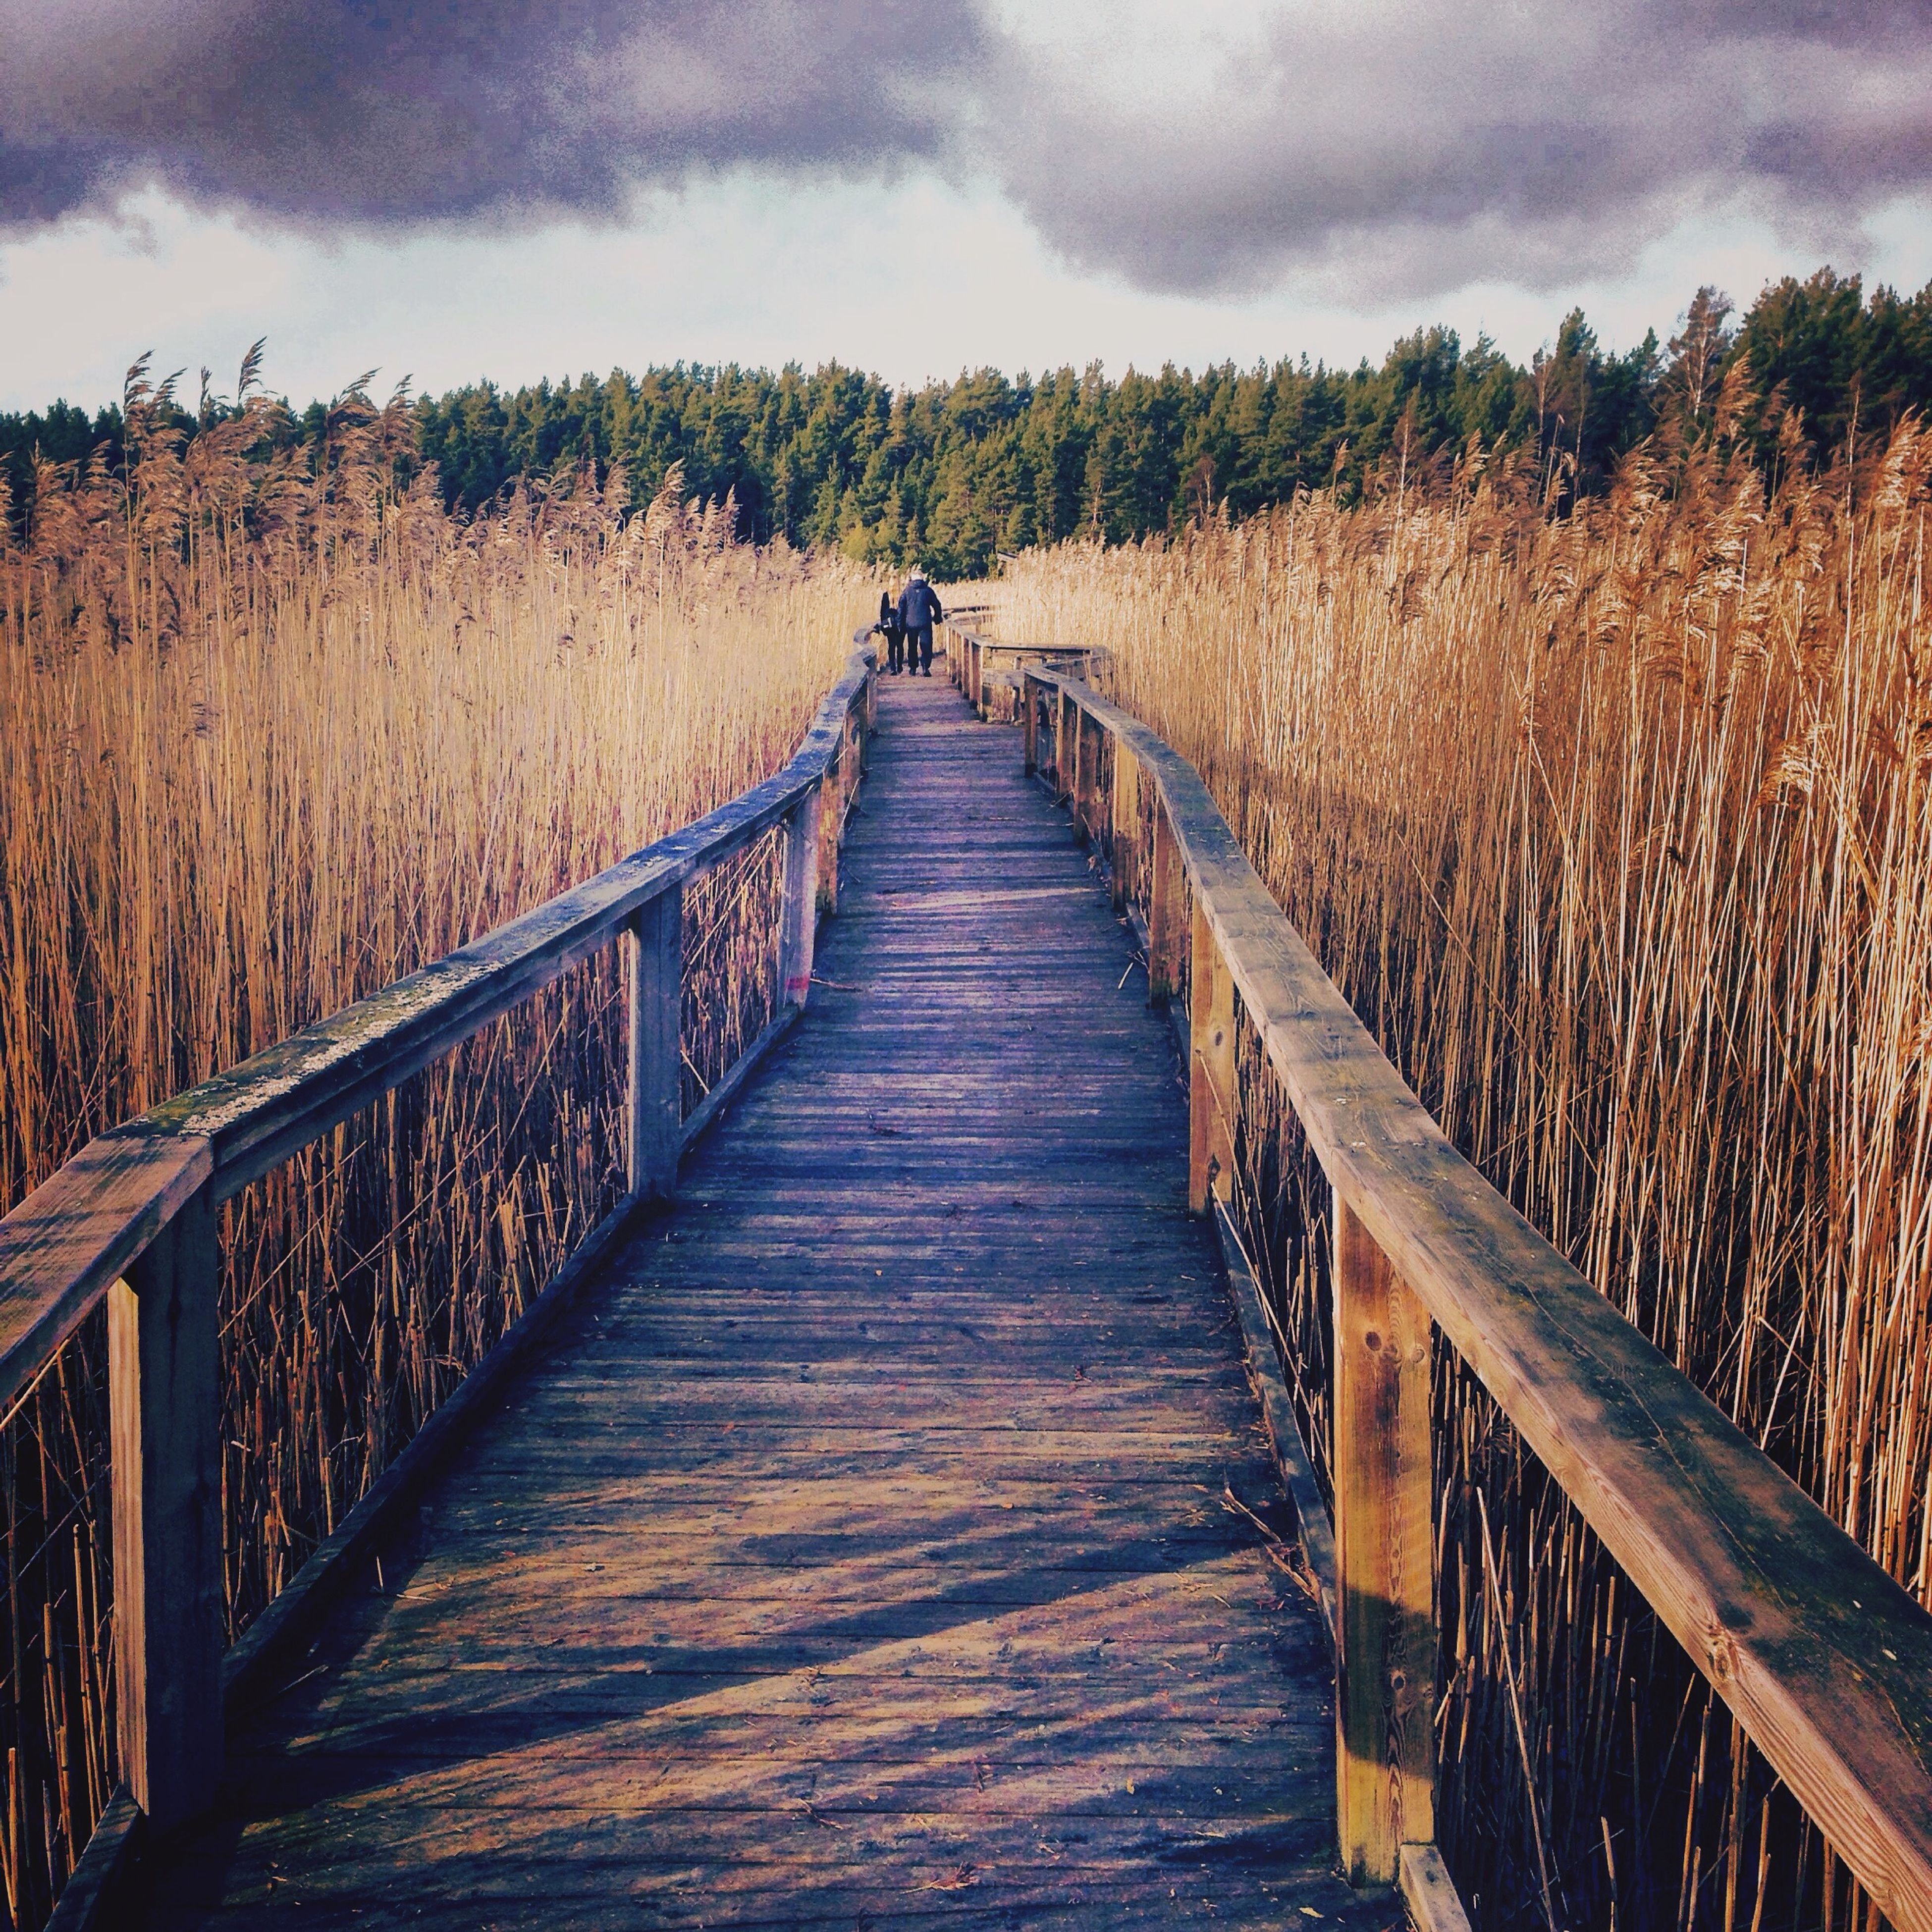 the way forward, railing, sky, tranquility, footbridge, tranquil scene, wood - material, boardwalk, nature, bridge - man made structure, cloud - sky, connection, landscape, tree, diminishing perspective, scenics, plant, beauty in nature, grass, bridge